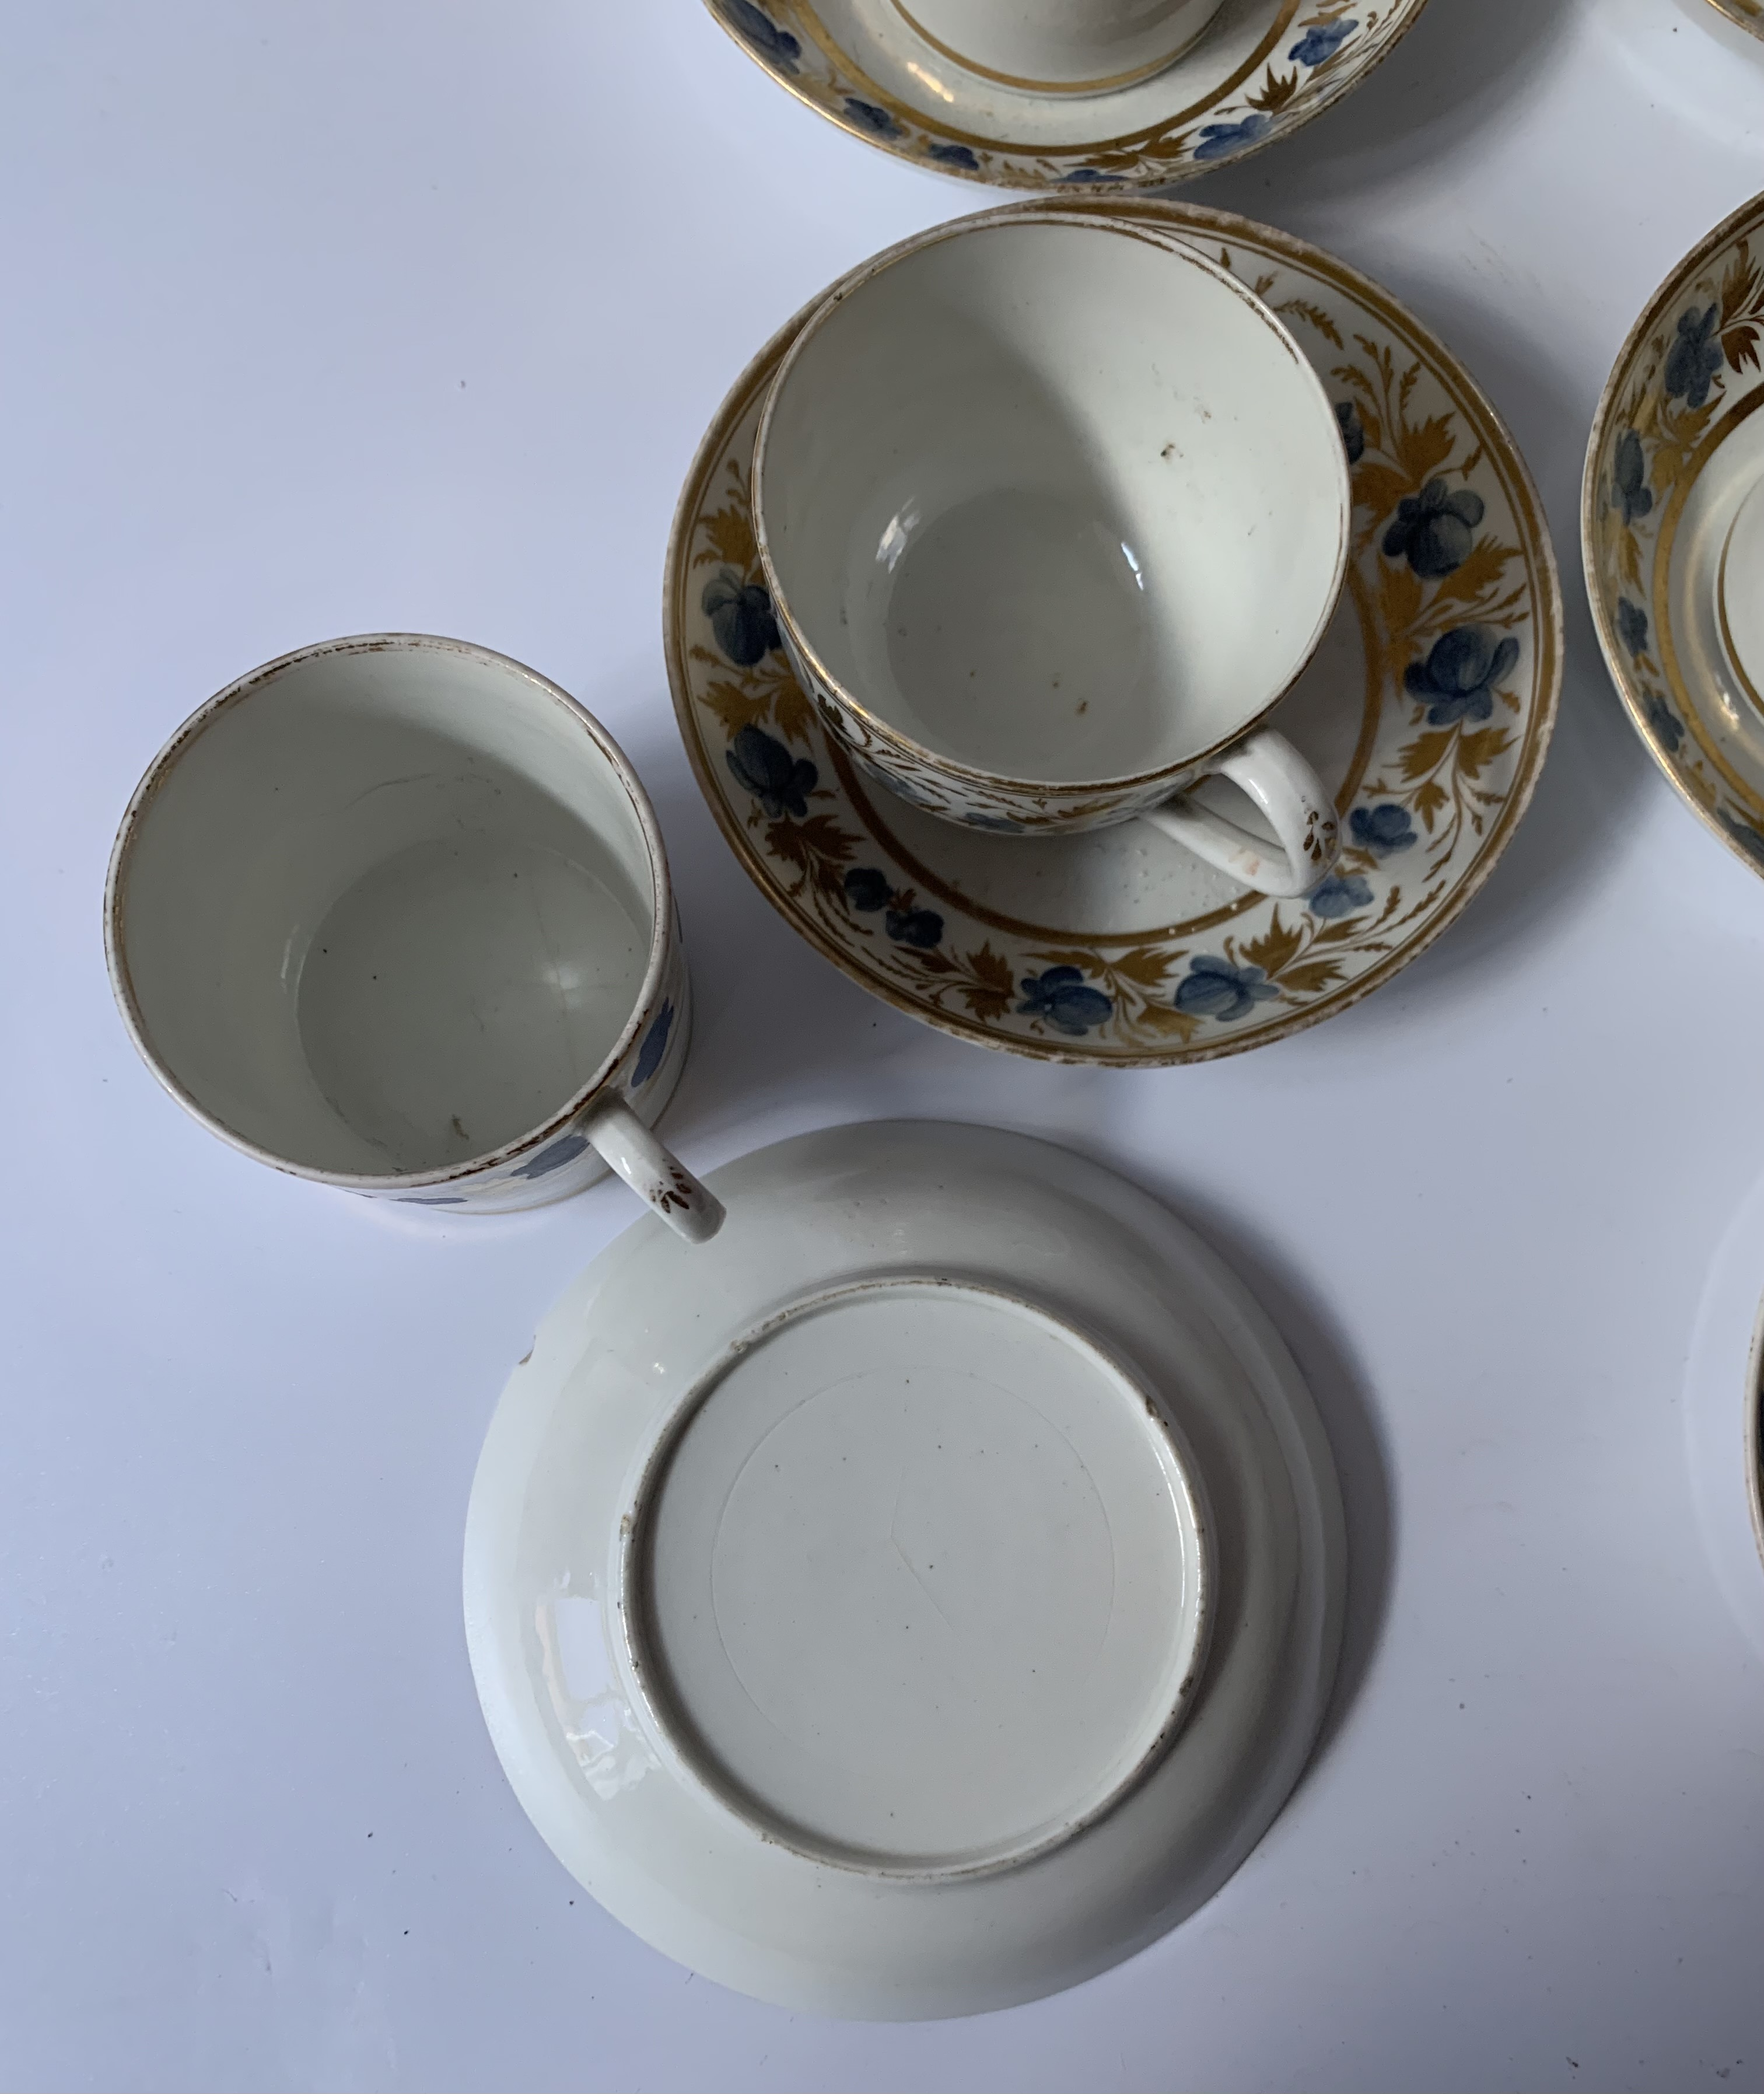 2 part blue/gilt tea and coffee sets - Image 4 of 6